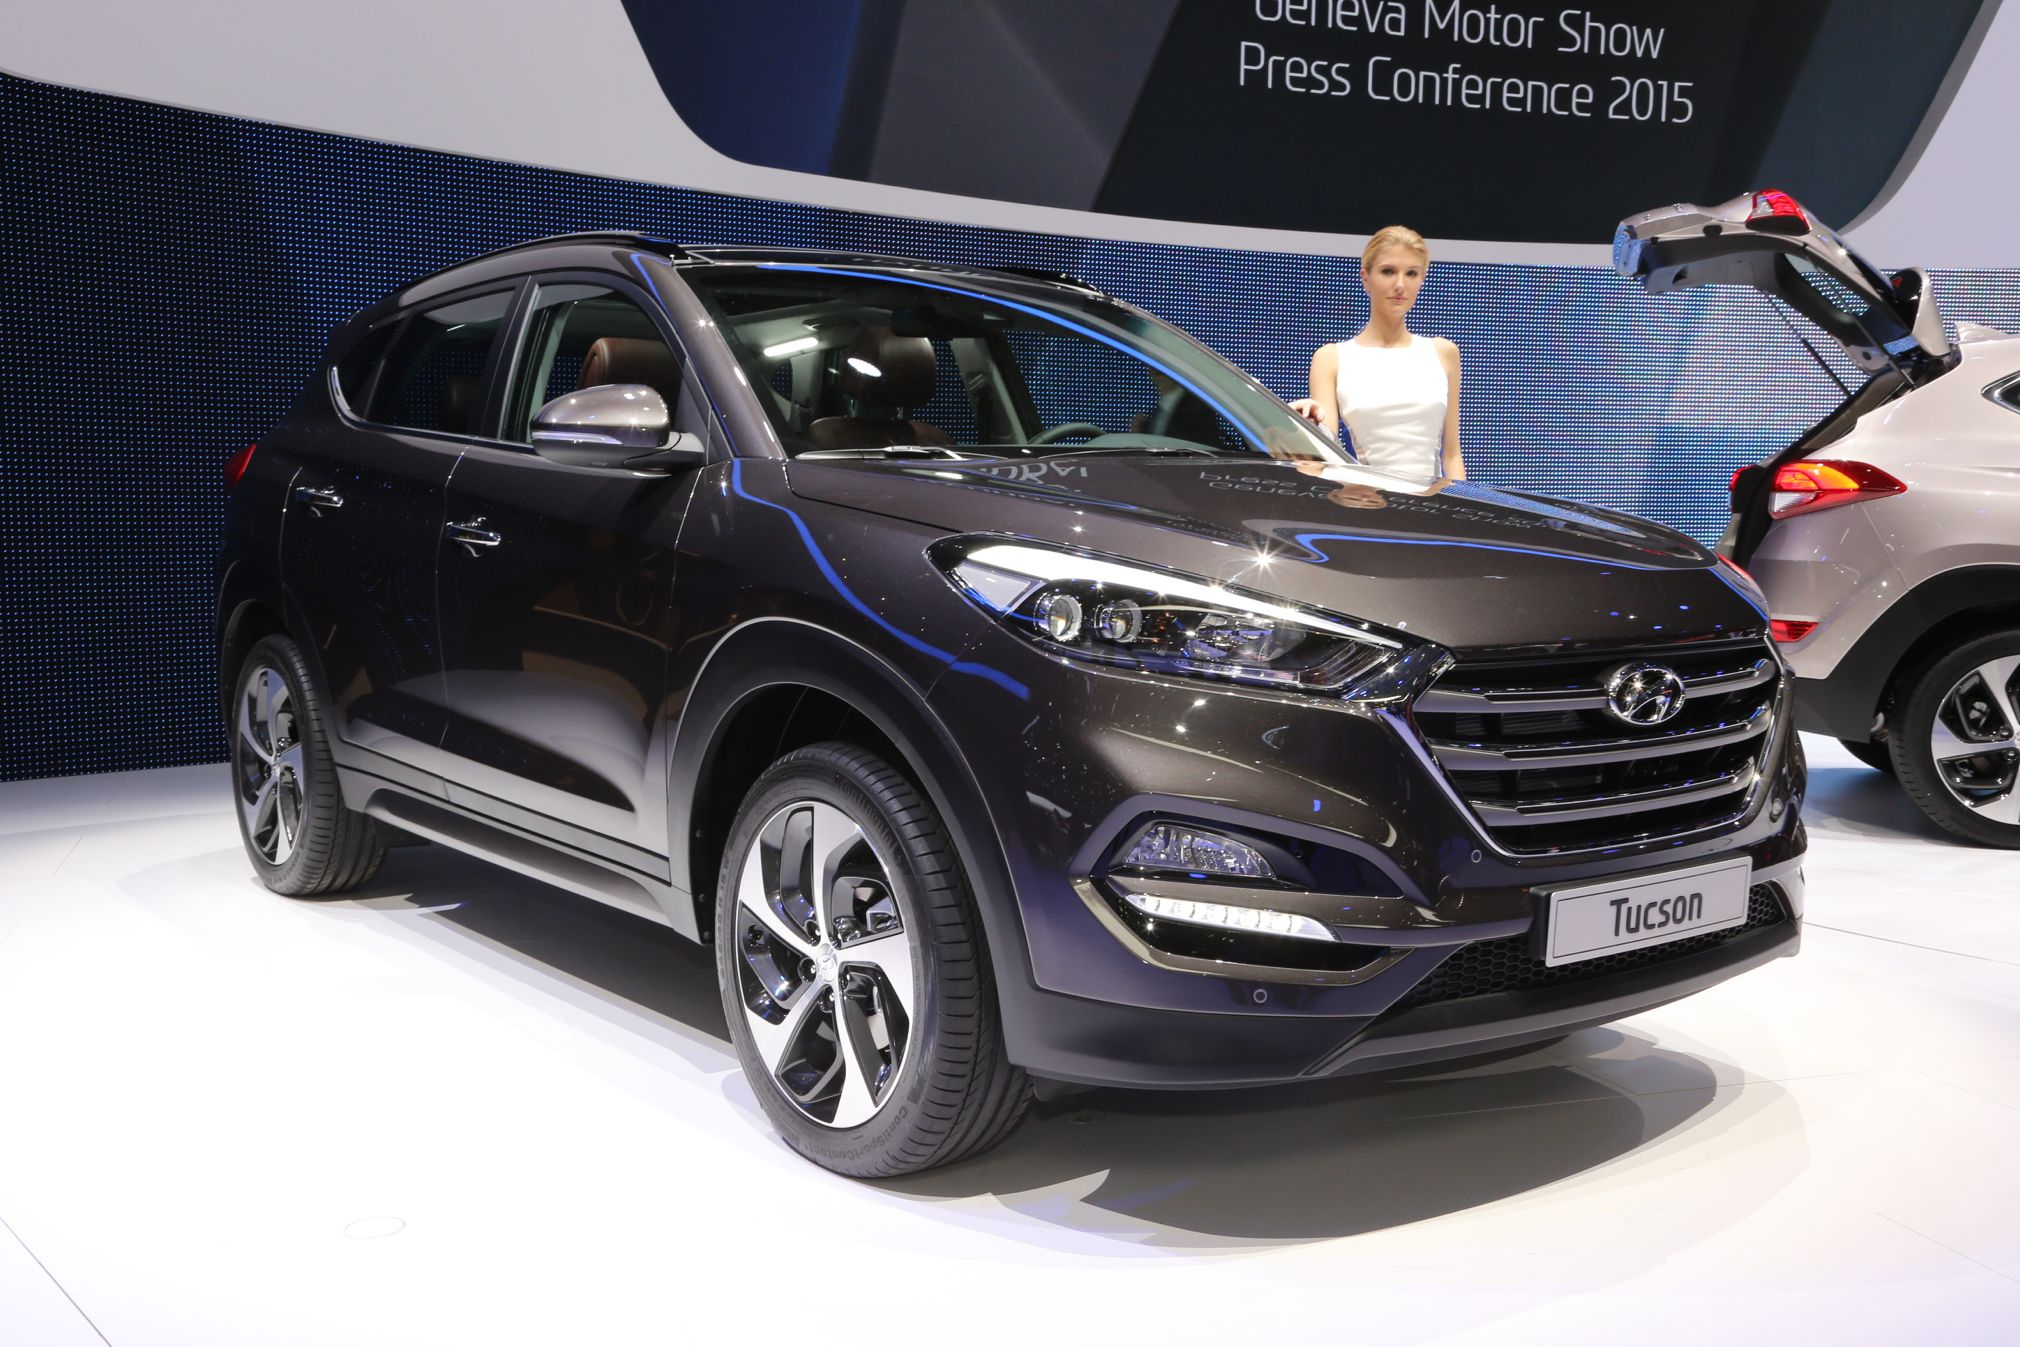 2016 hyundai tucson is the featured model the 2016 hyundai tucson black model image is added in car pictures category by the author on oct